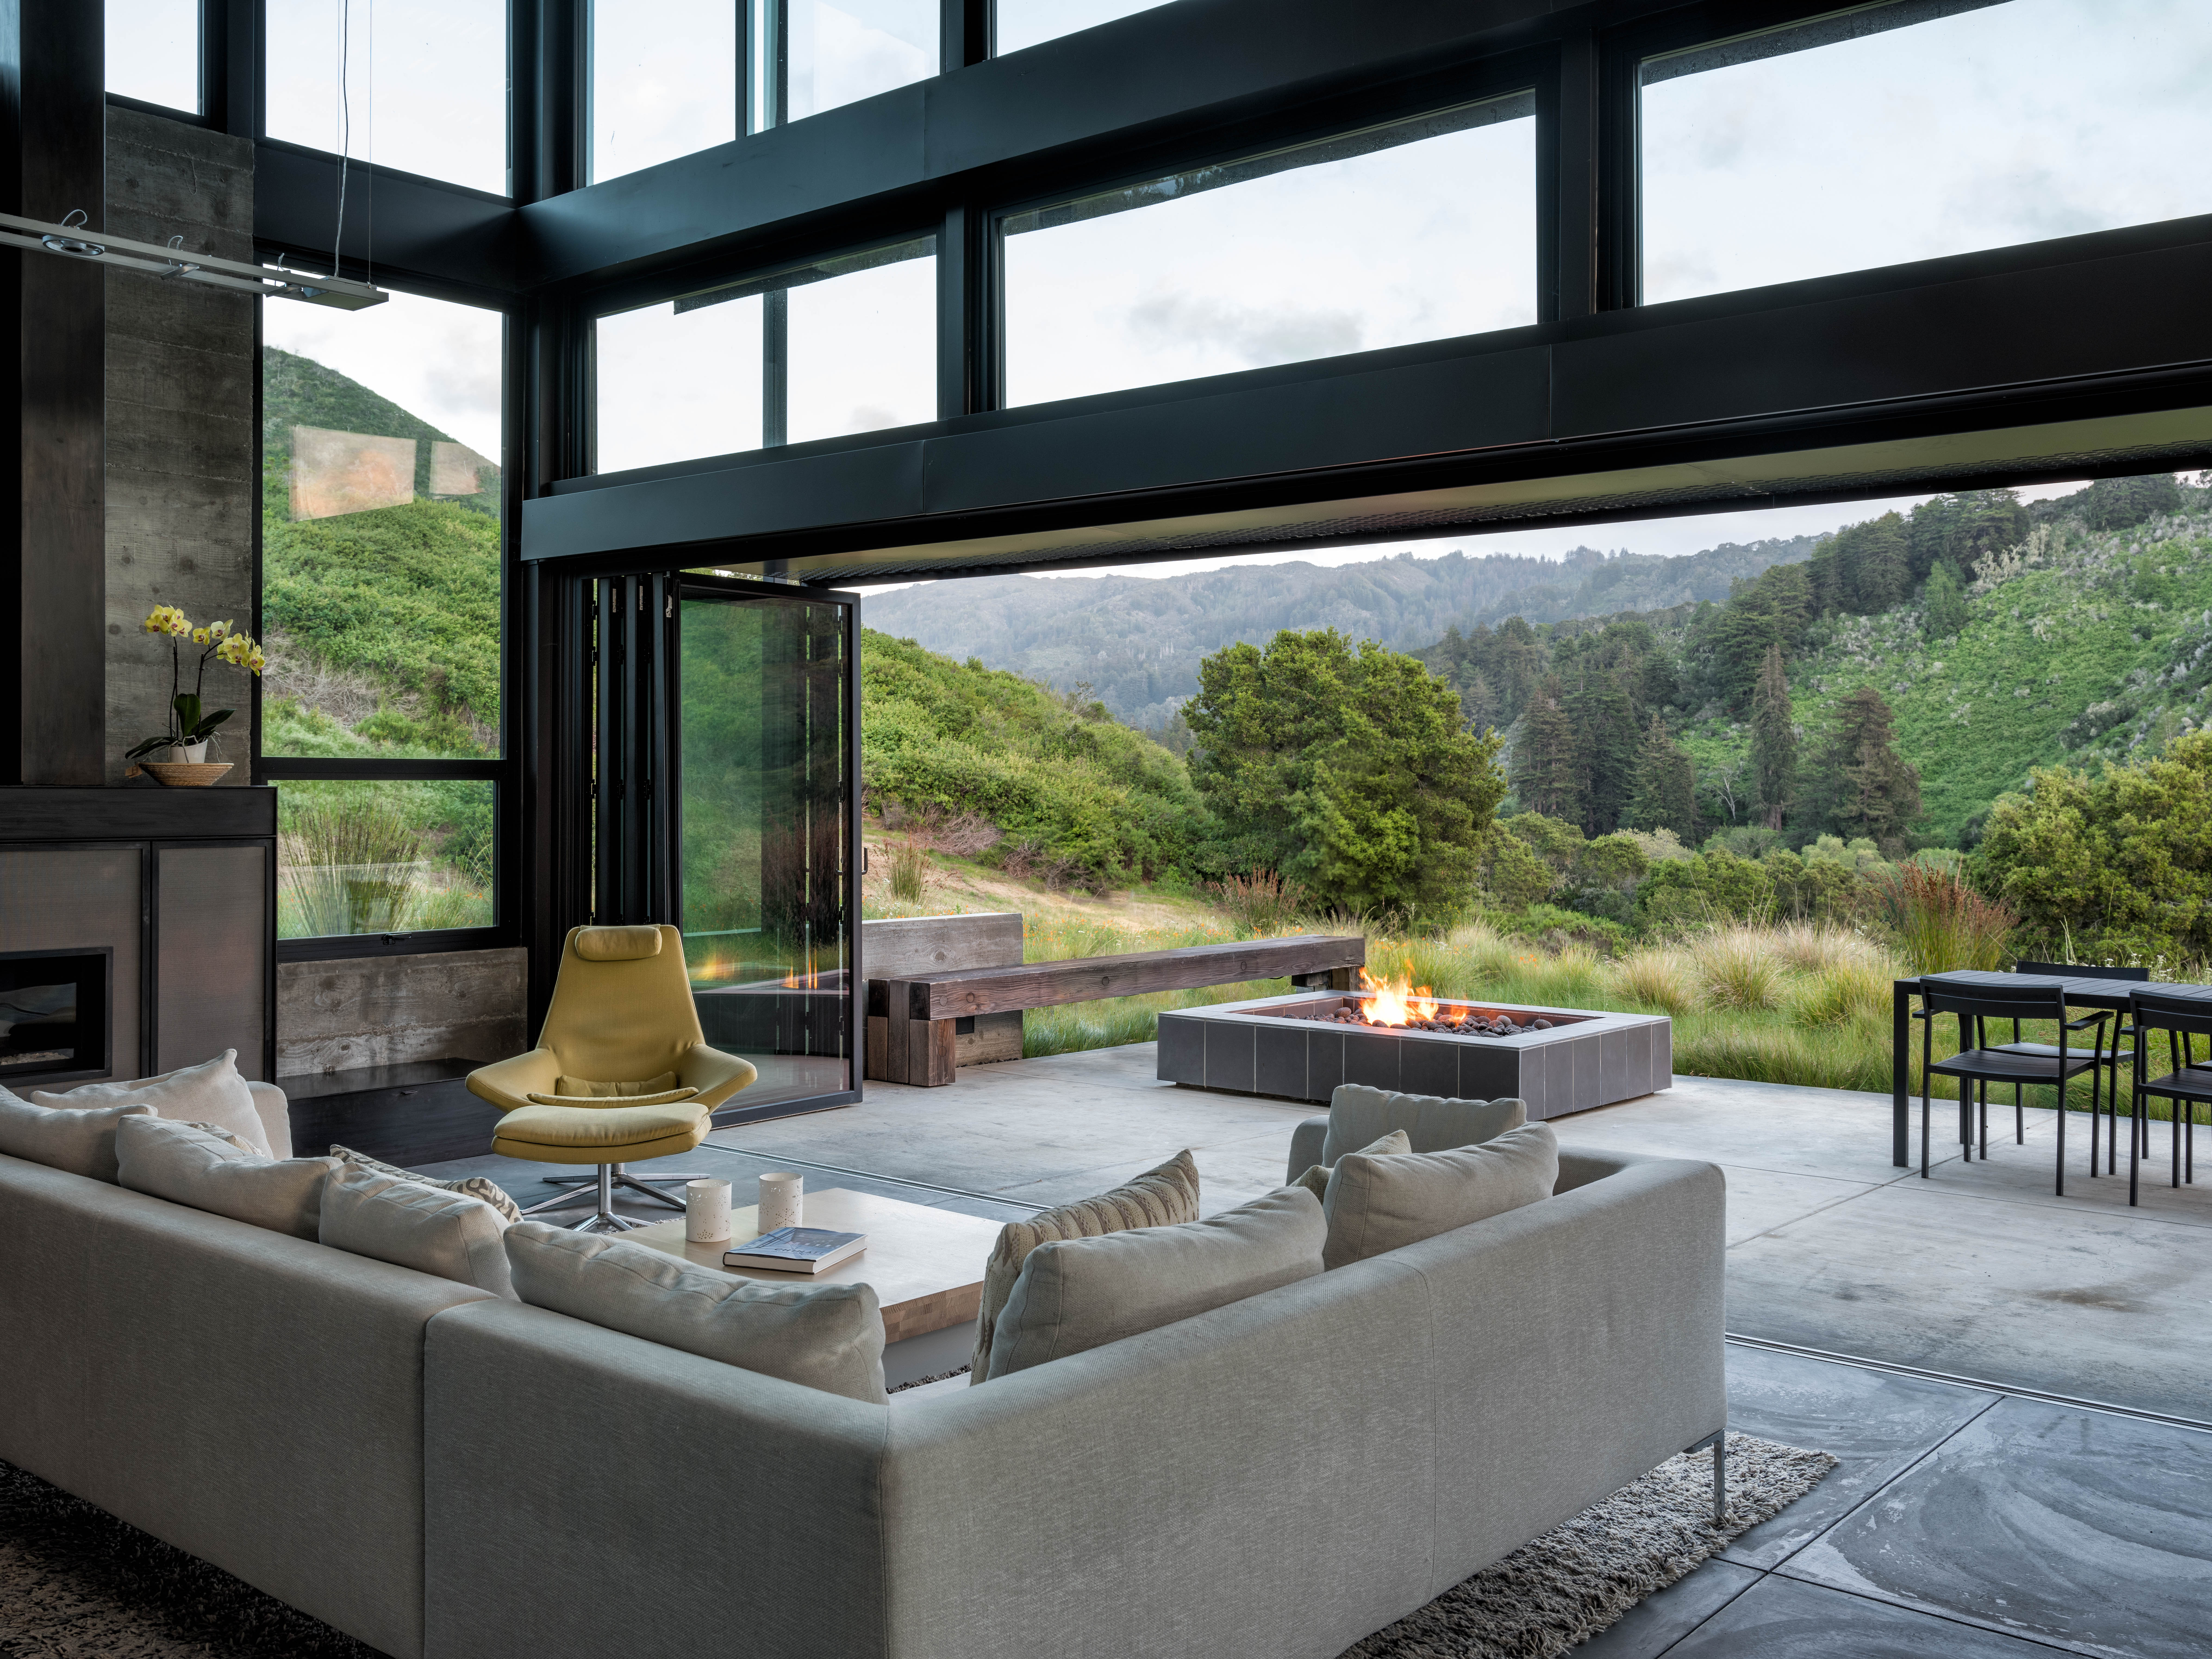 On a patio, a custom fire pit and cedar bench anchor the outdoor living space. At the edge of the patio, Festuca mairei grasses add an airy texture. See growing tips in Festuca: A Field Guide to Planting, Care & Design.